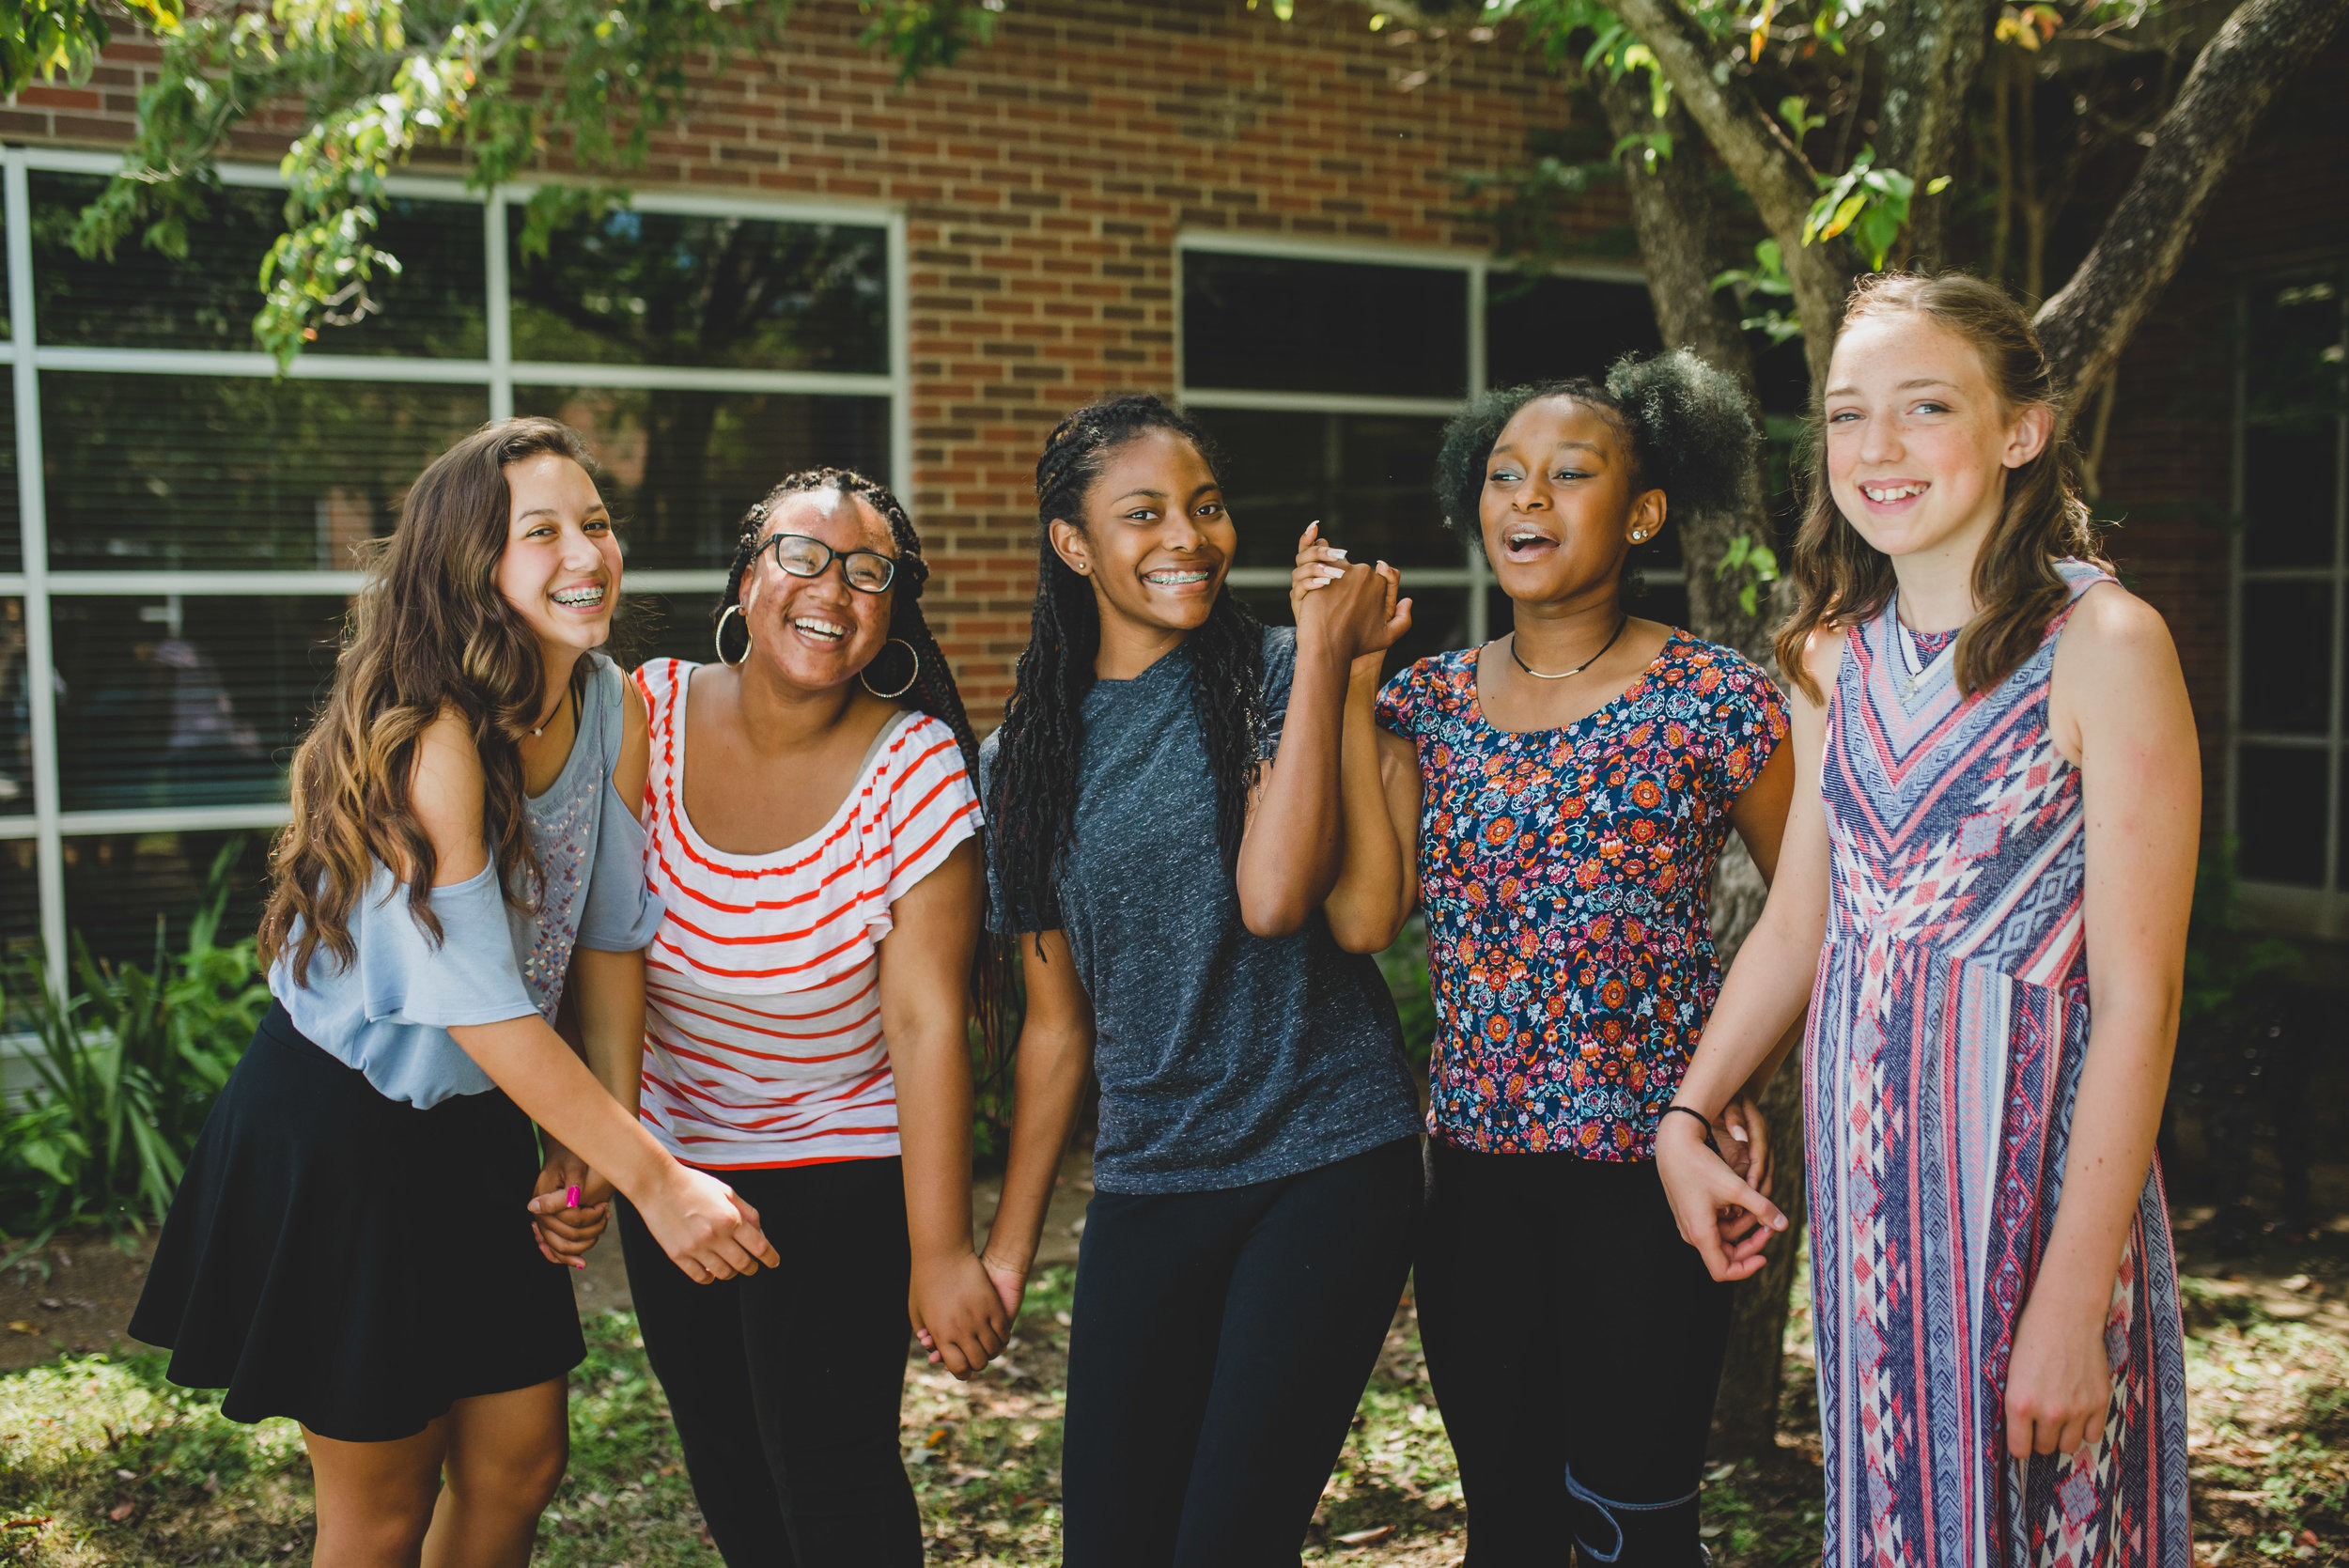 Five young girls.  All from very different backgrounds.  They formed a bond through learning to work together and celebrate one another's gifts.